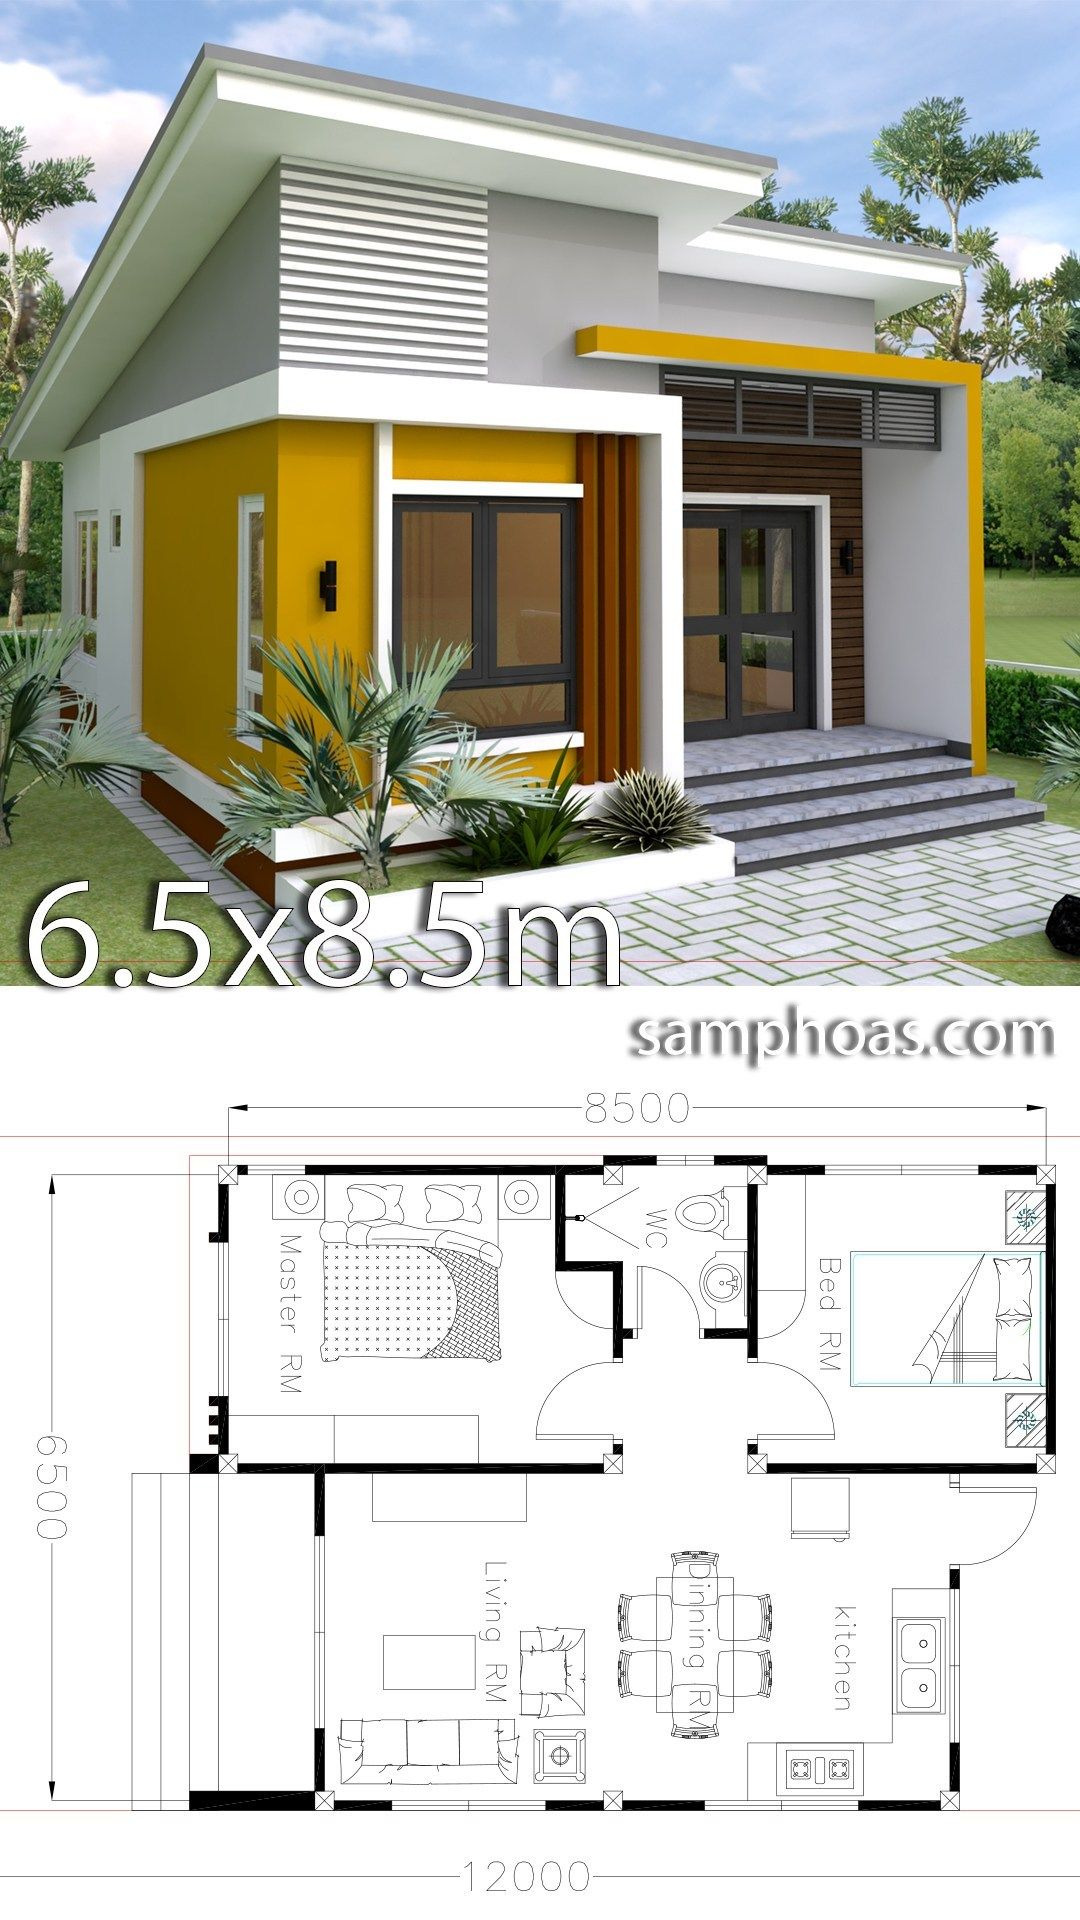 Simple House Designs and Floor Plans Elegant Small Home Design Plan 6 5x8 5m with 2 Bedrooms with Images